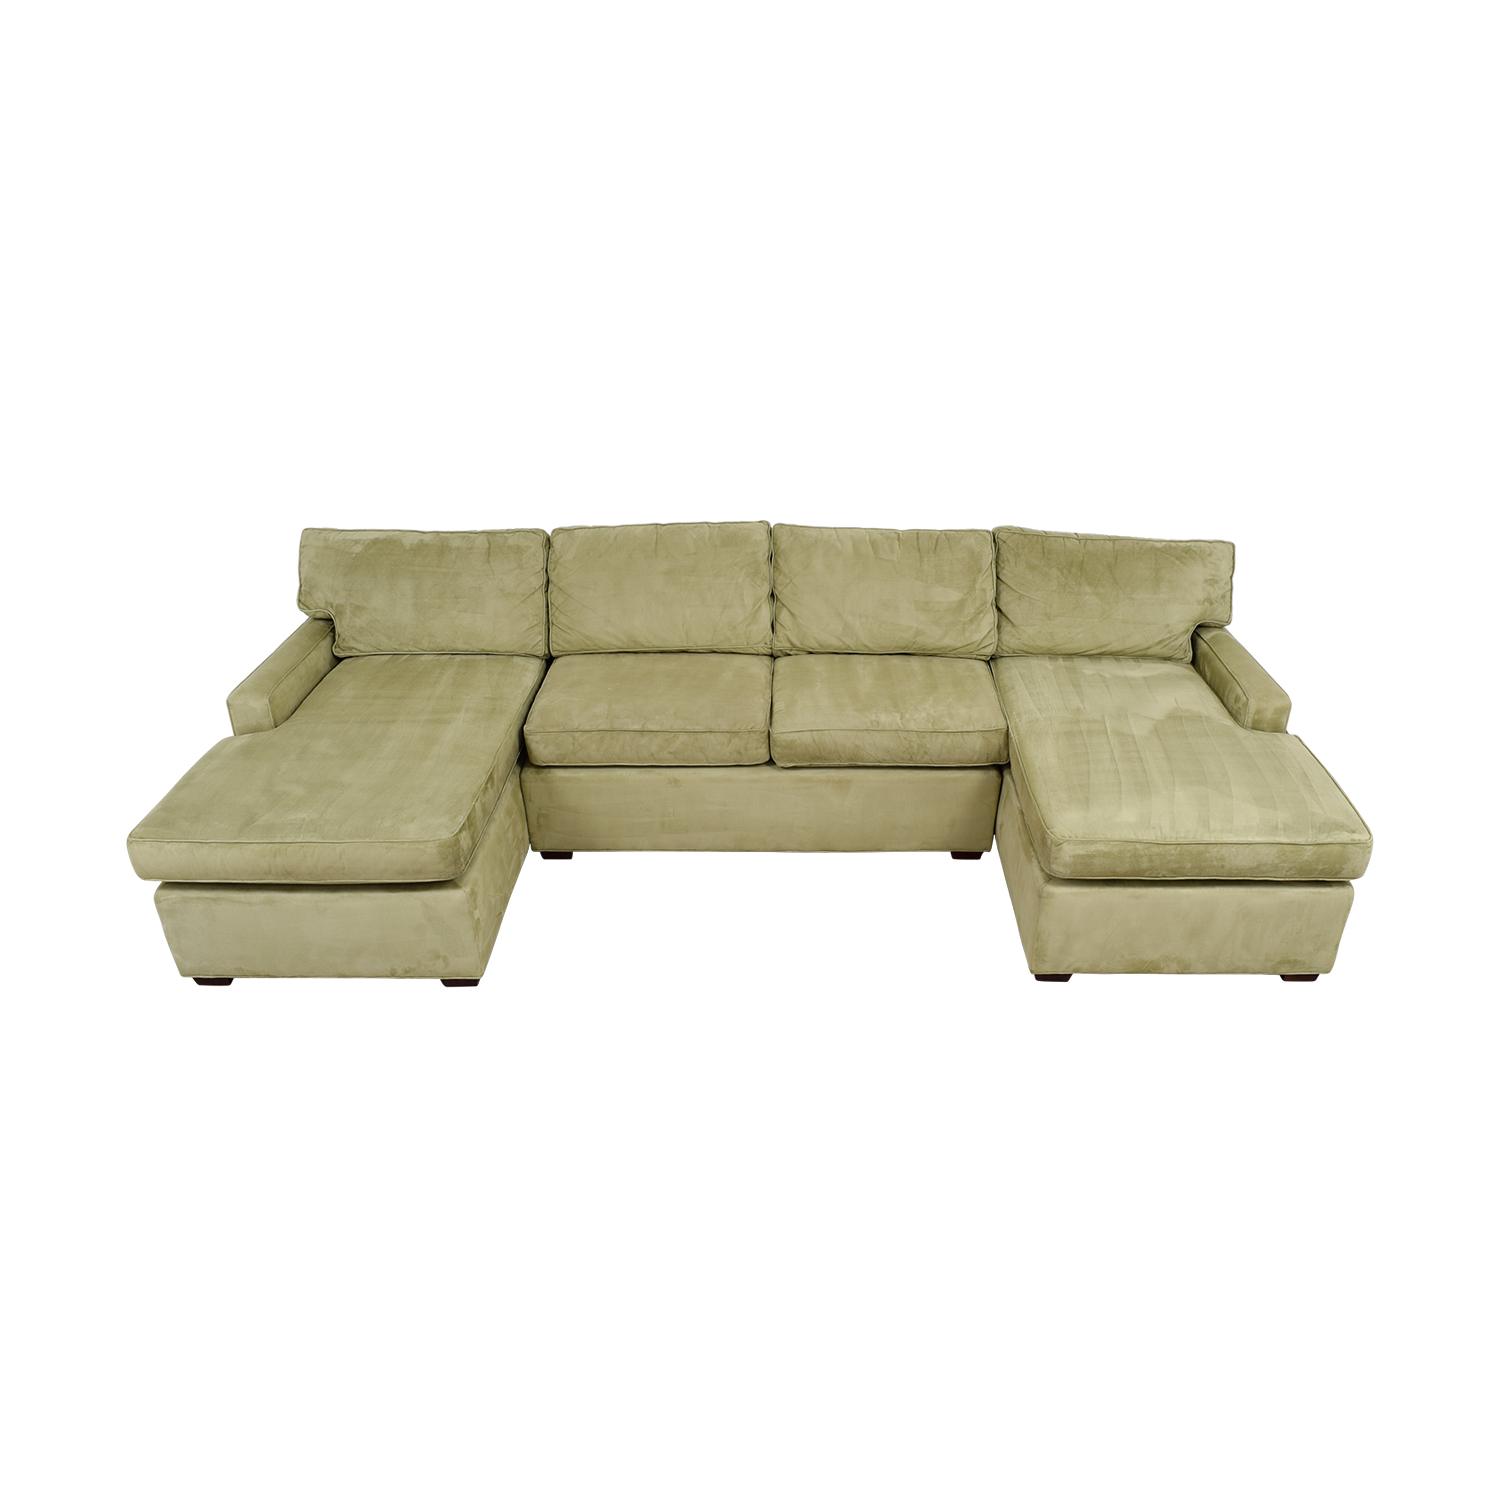 Pottery Barn Pottery Barn Double Chaise Light Green Sectional price